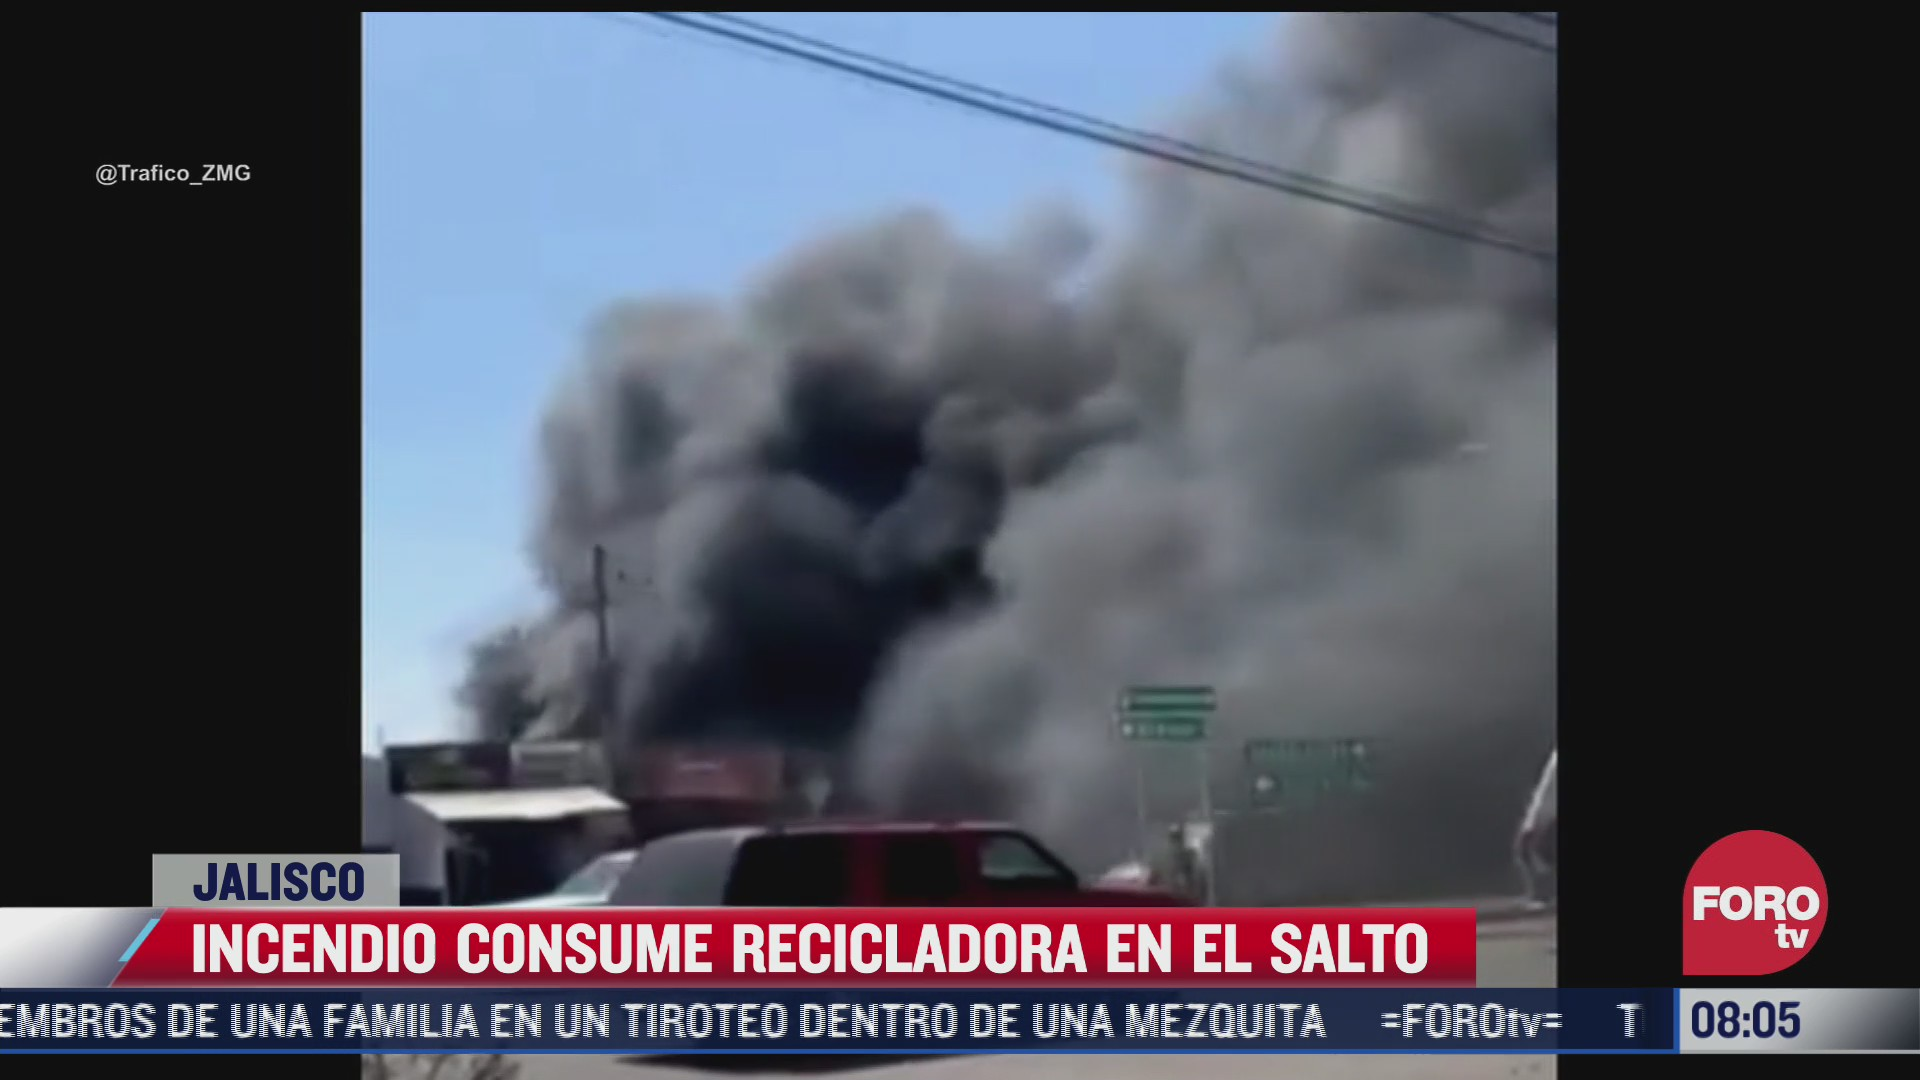 incendio consume planta recicladora en jalisco